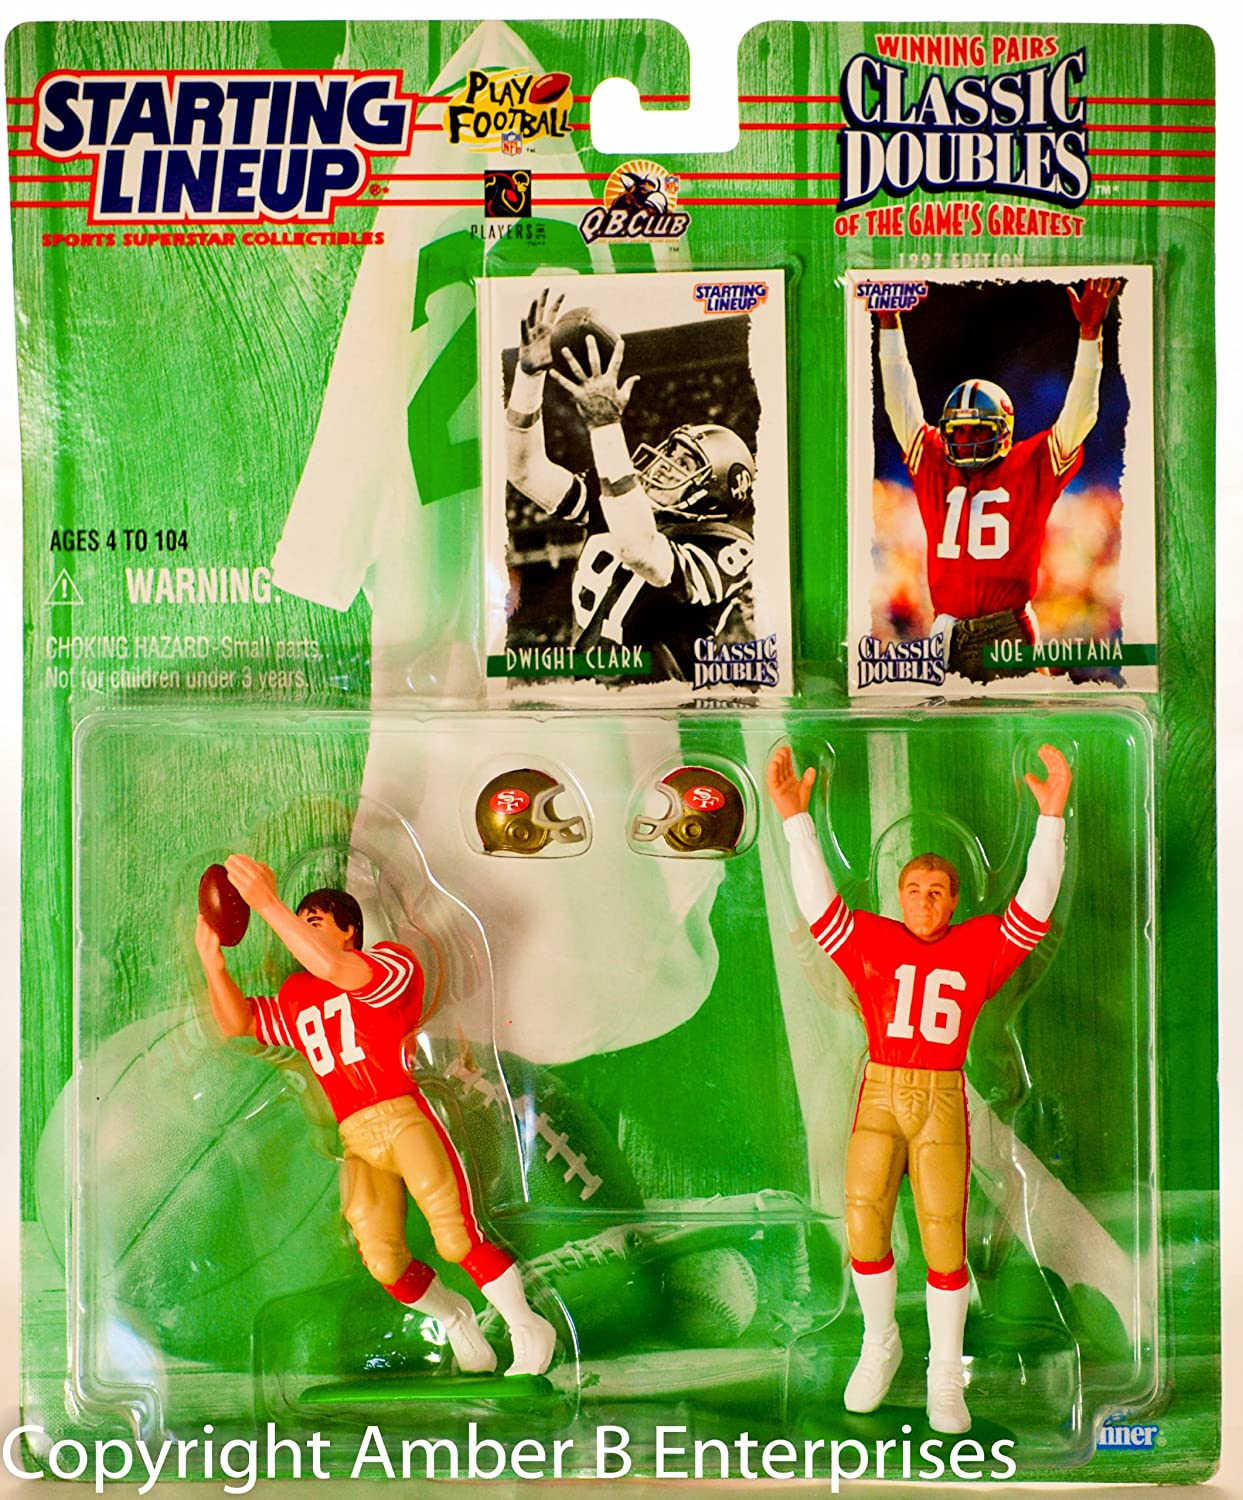 San Francisco 49ers Dwight Clark Winning Pairs Starting Lineup Action Figures Exclusive Collector Trading Cards San Francisco 49ers 1997 Nfl Classic Doubles Joe Montana Toy Figures Toys Game Room